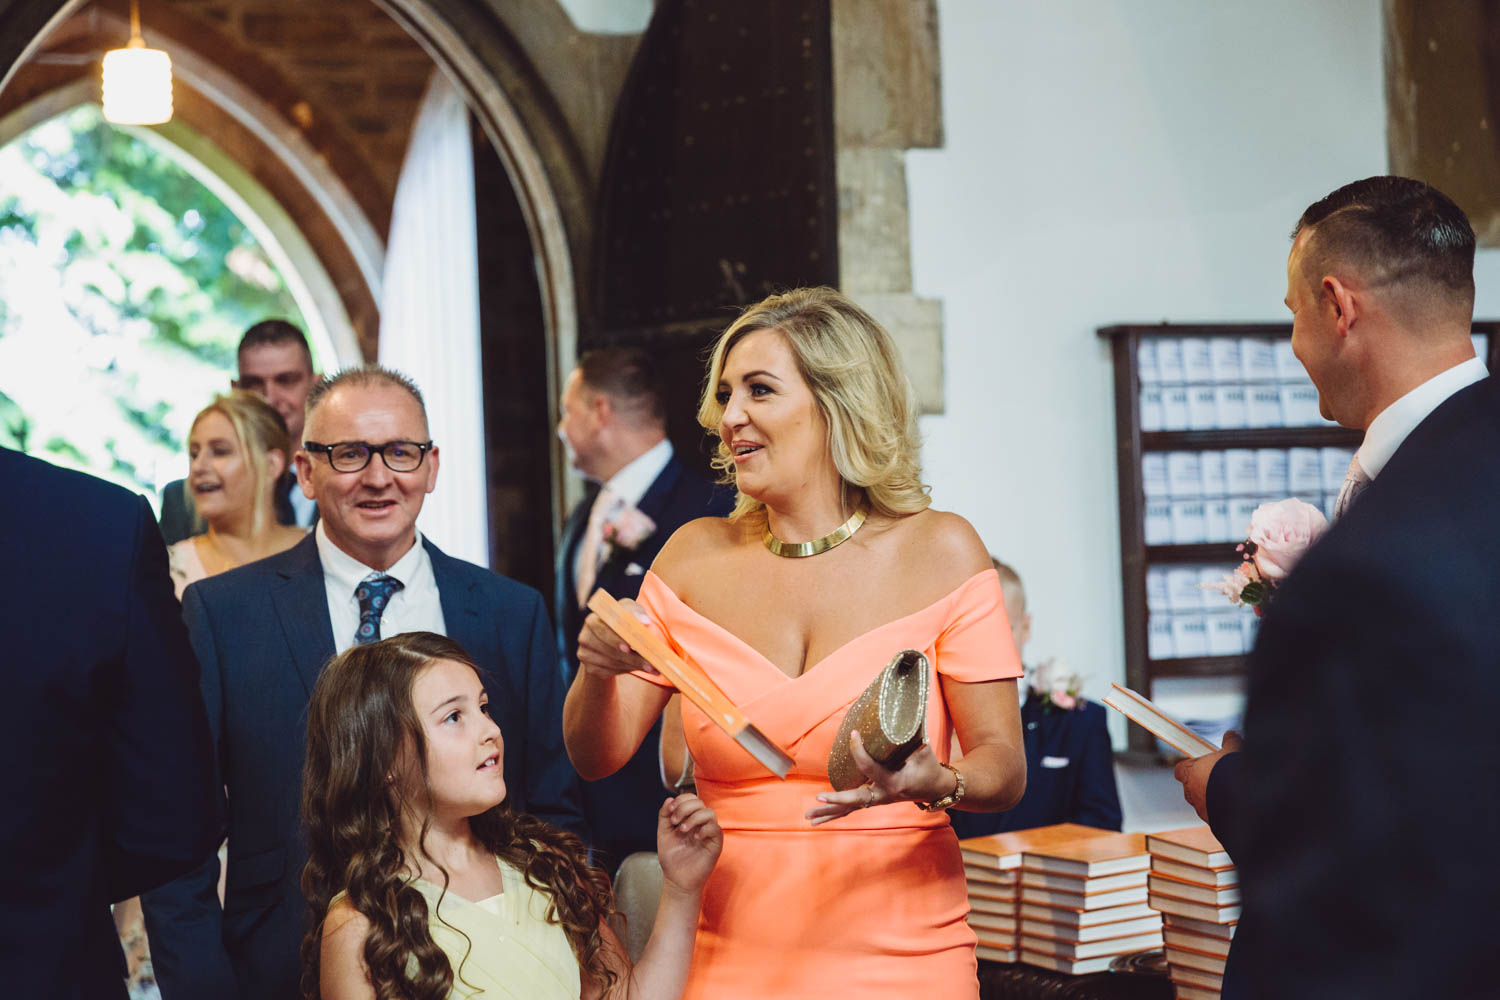 St Martins church Caerphilly, wedding photographer